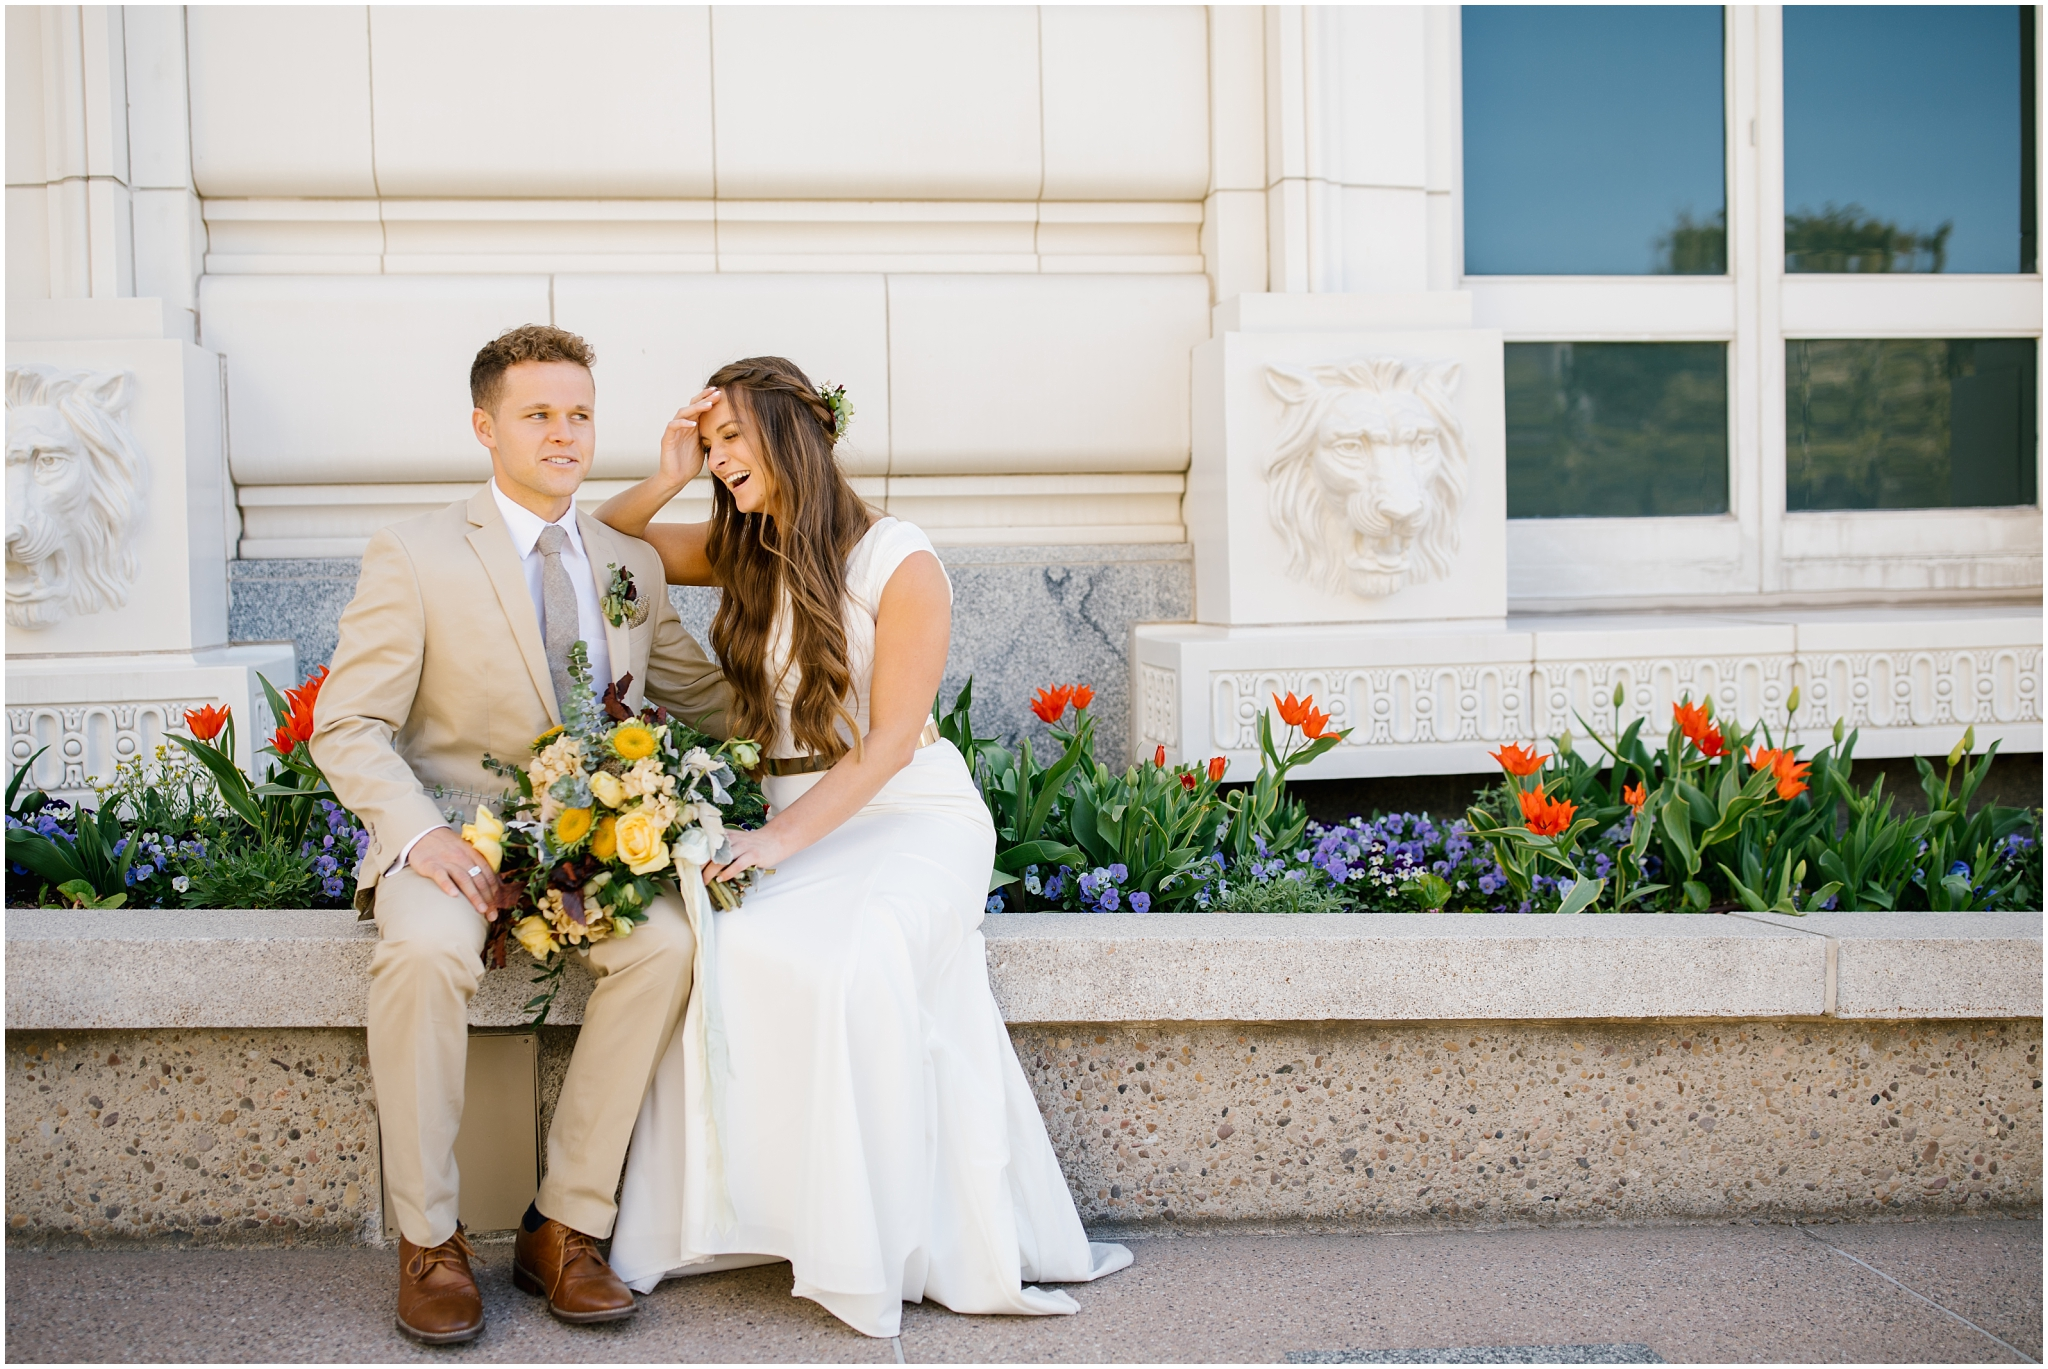 JC-Wedding-213_Lizzie-B-Imagery-Utah-Wedding-Photographer-Salt-Lake-City-Temple-Joseph-Smith-Memorial-Building-Reception.jpg